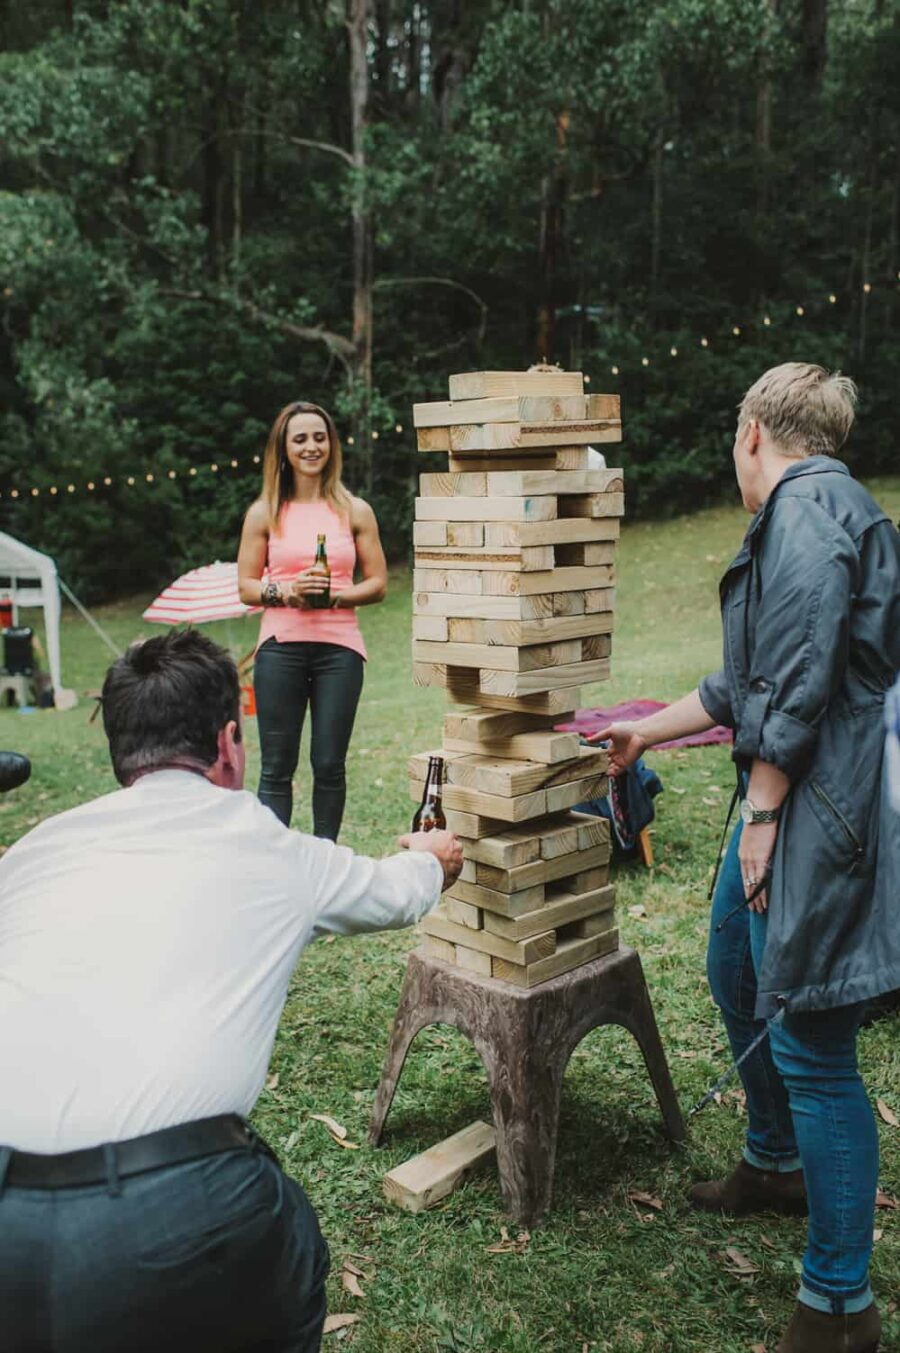 wedding lawn games – giant jenga